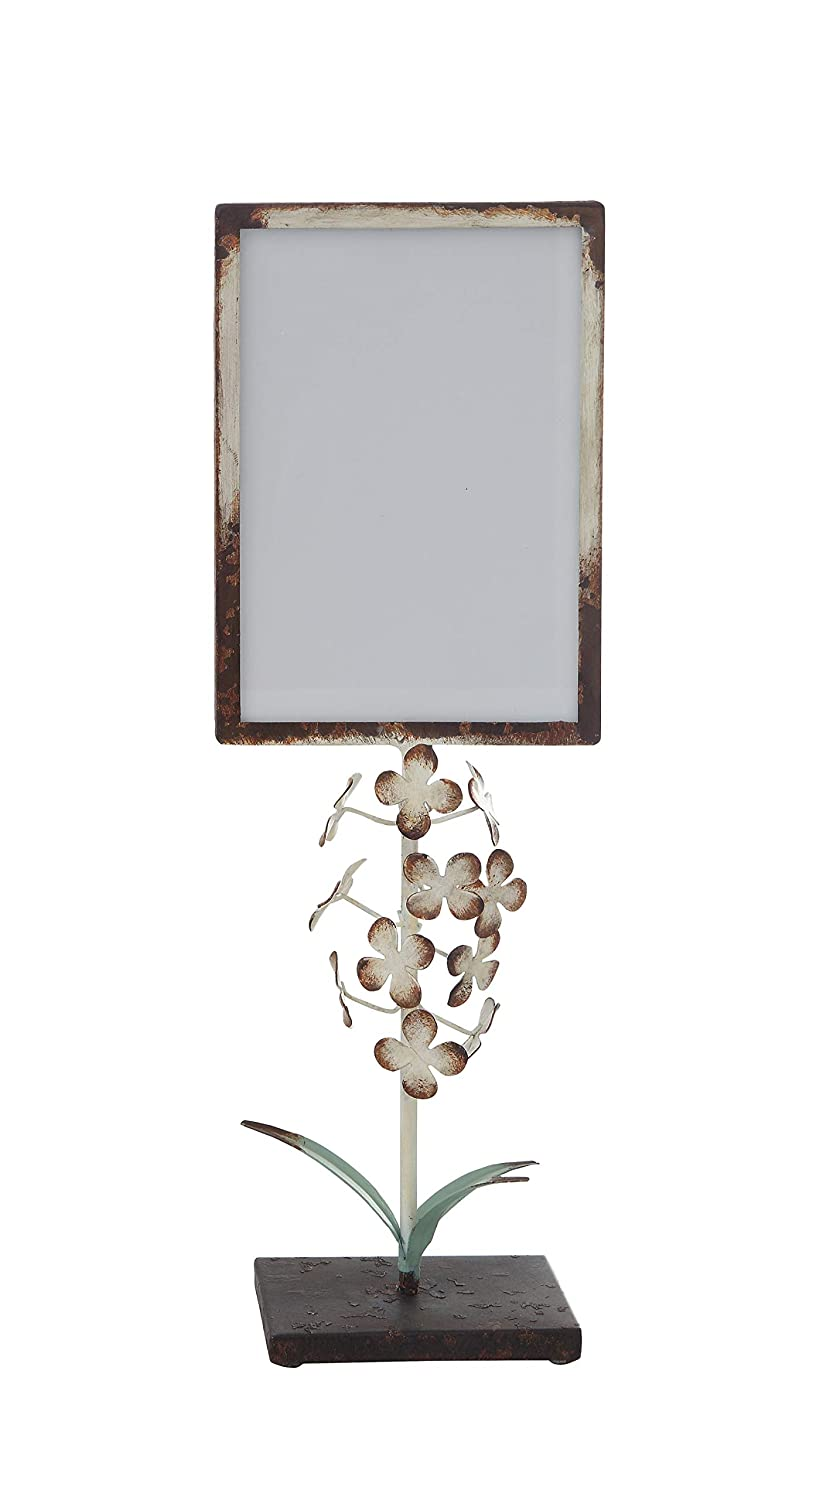 Creative Co-op Small Distressed Metal Tole Flowers on Stand (Holds 5' x 7') Photo Frame, 5 Inch x 7 Inch, Blue